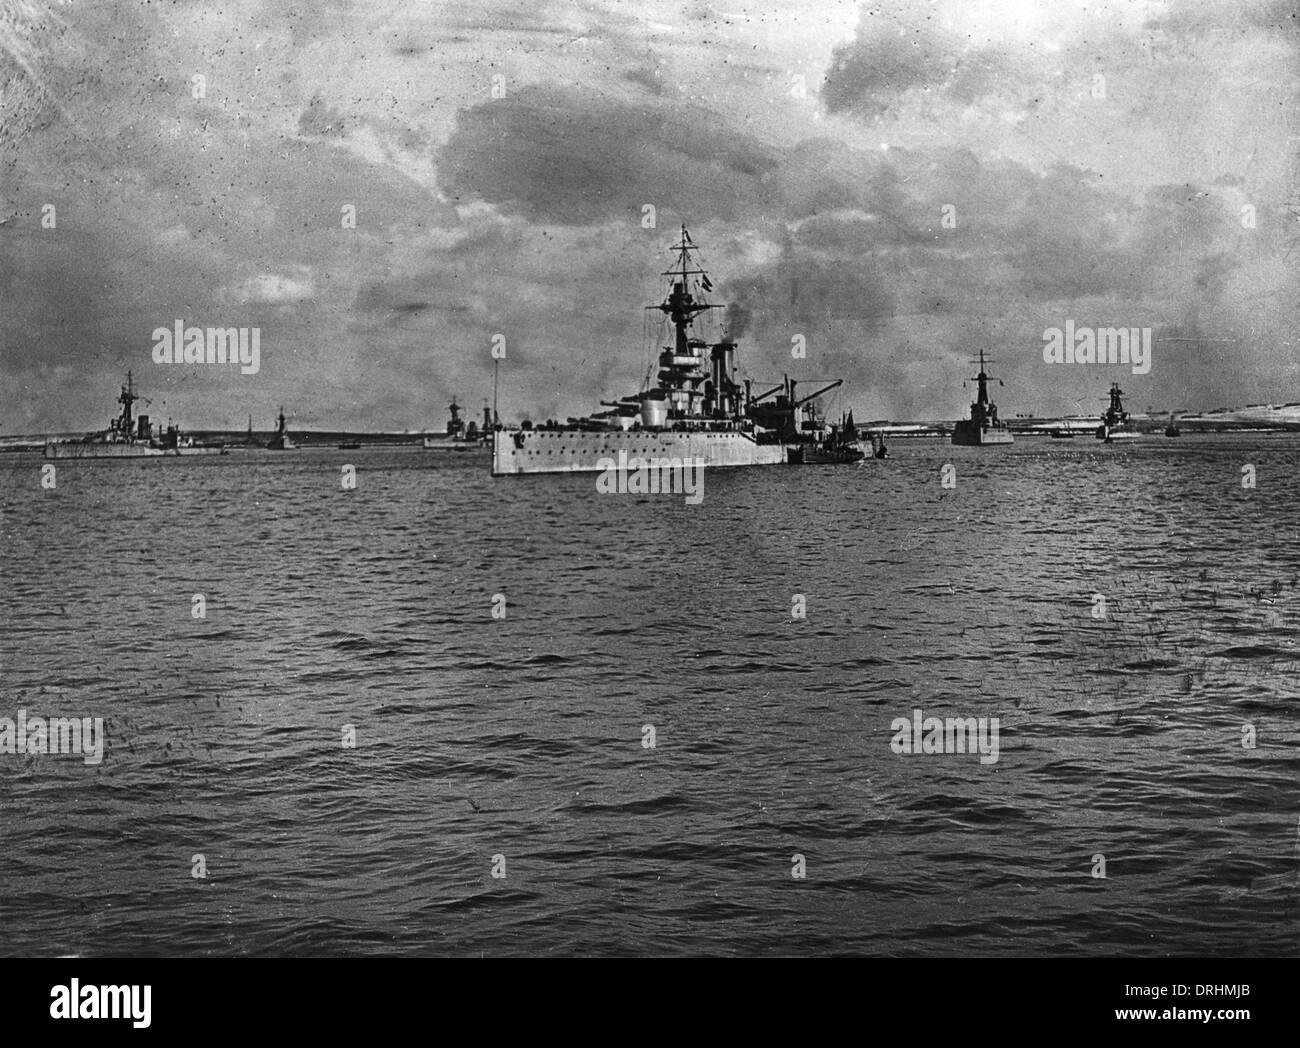 HMS Ajax, British light cruiser, WW2 - Stock Image